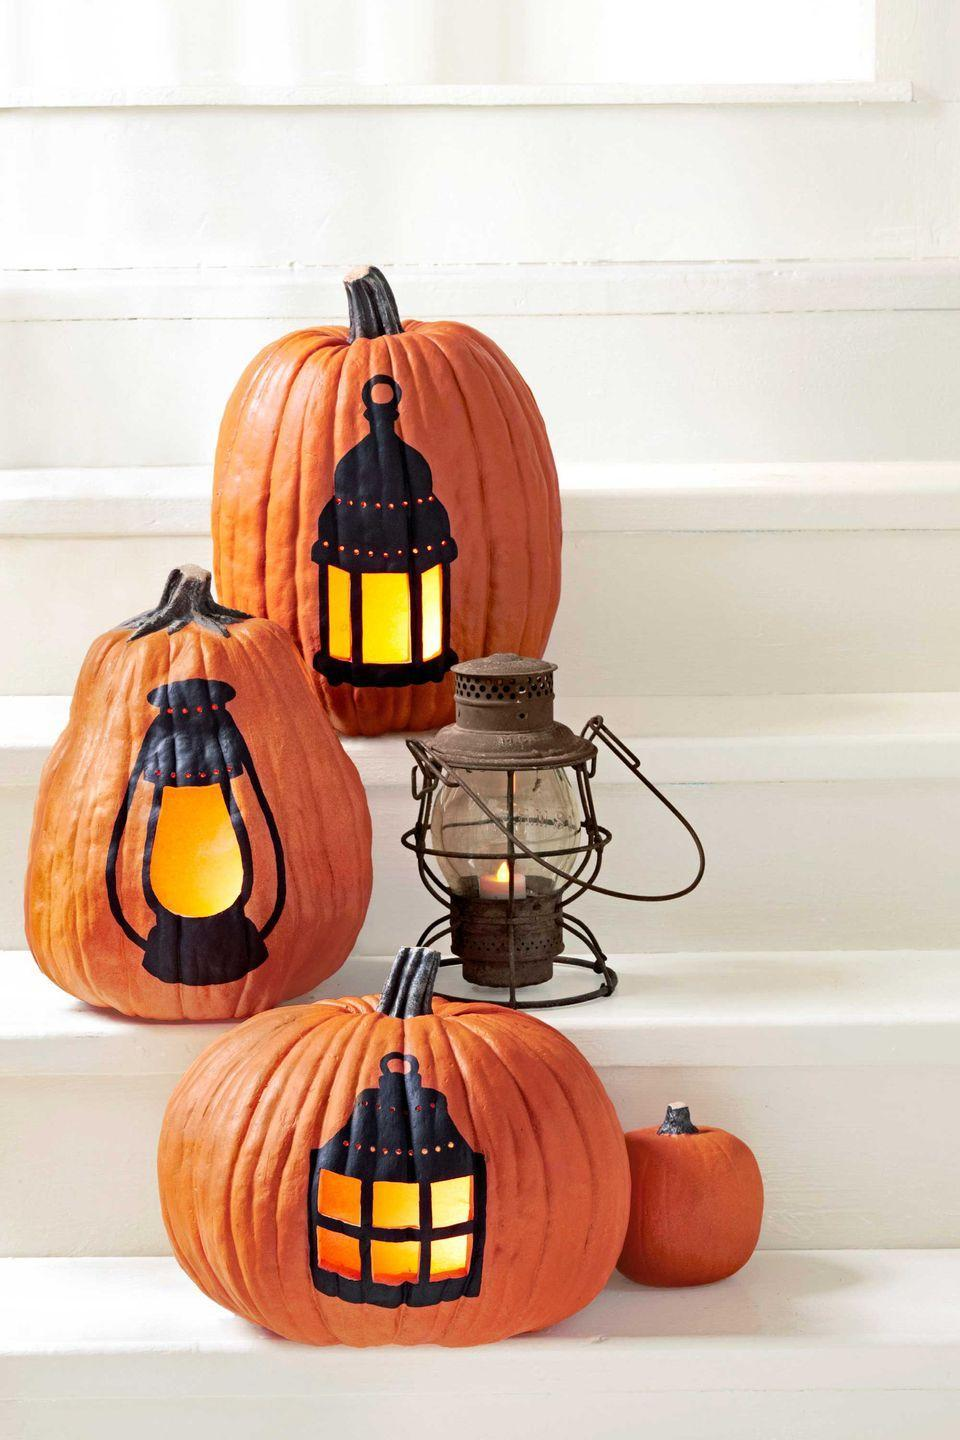 "<p>Put a cheeky spin on the word jack-o'-lantern with three glowing silhouettes of old-school lamps.</p><p><strong><a href=""https://www.countryliving.com/diy-crafts/how-to/a3031/lantern-pumpkin-1009/"" rel=""nofollow noopener"" target=""_blank"" data-ylk=""slk:Get the tutorial"" class=""link rapid-noclick-resp"">Get the tutorial</a></strong>.</p>"